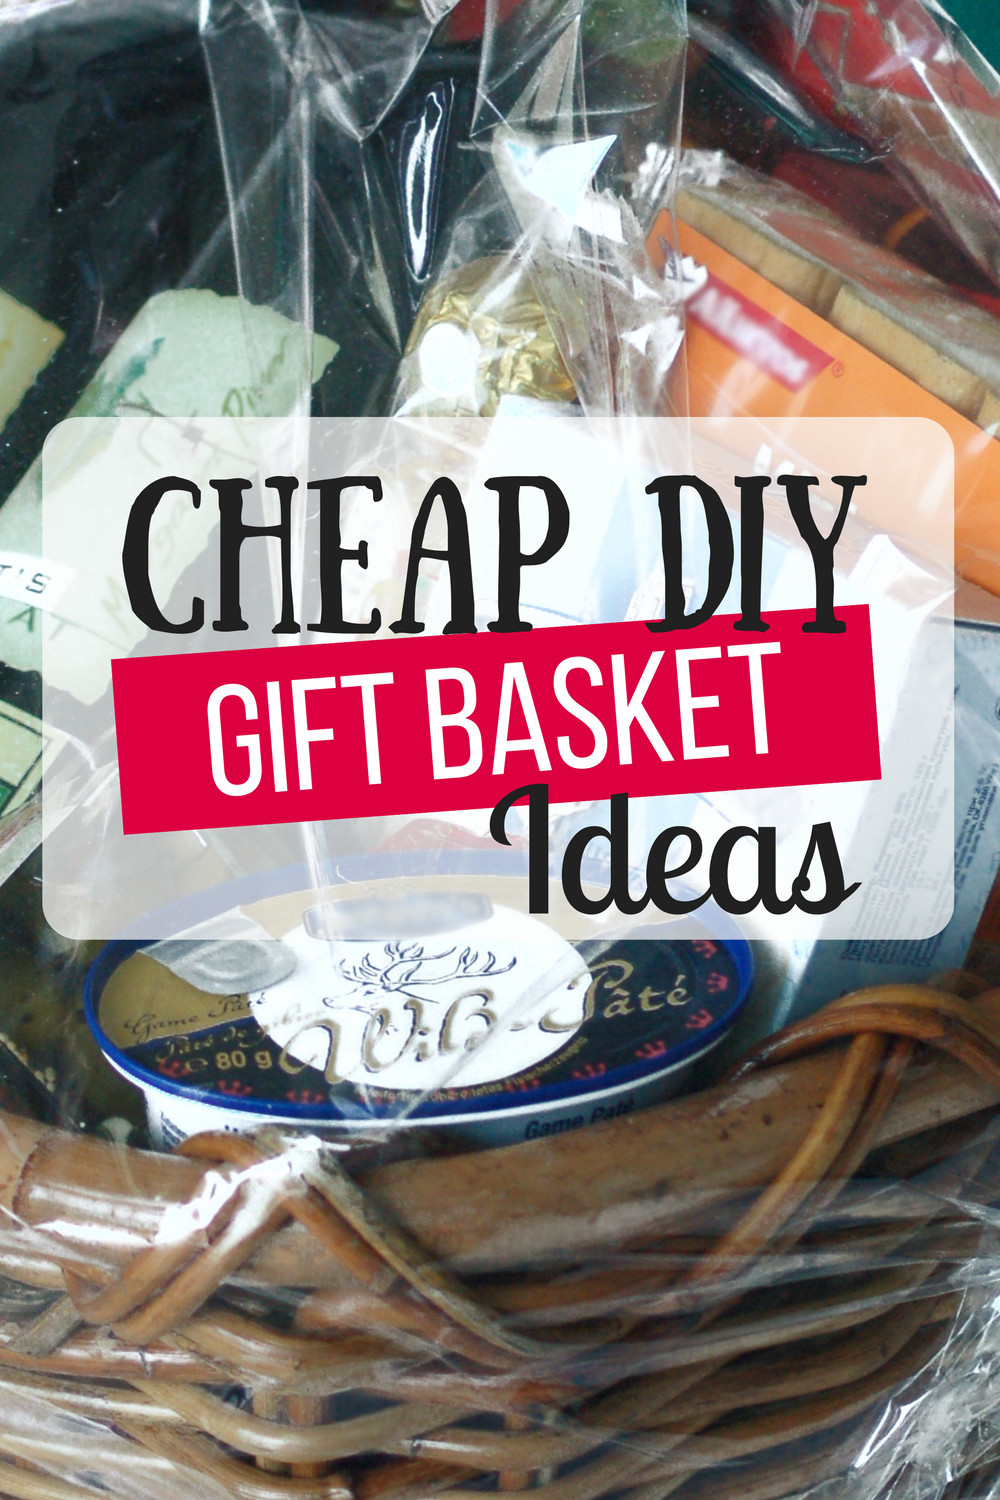 Home Made Christmas Gift Basket Ideas  Cheap DIY Gift Baskets The Busy Bud er